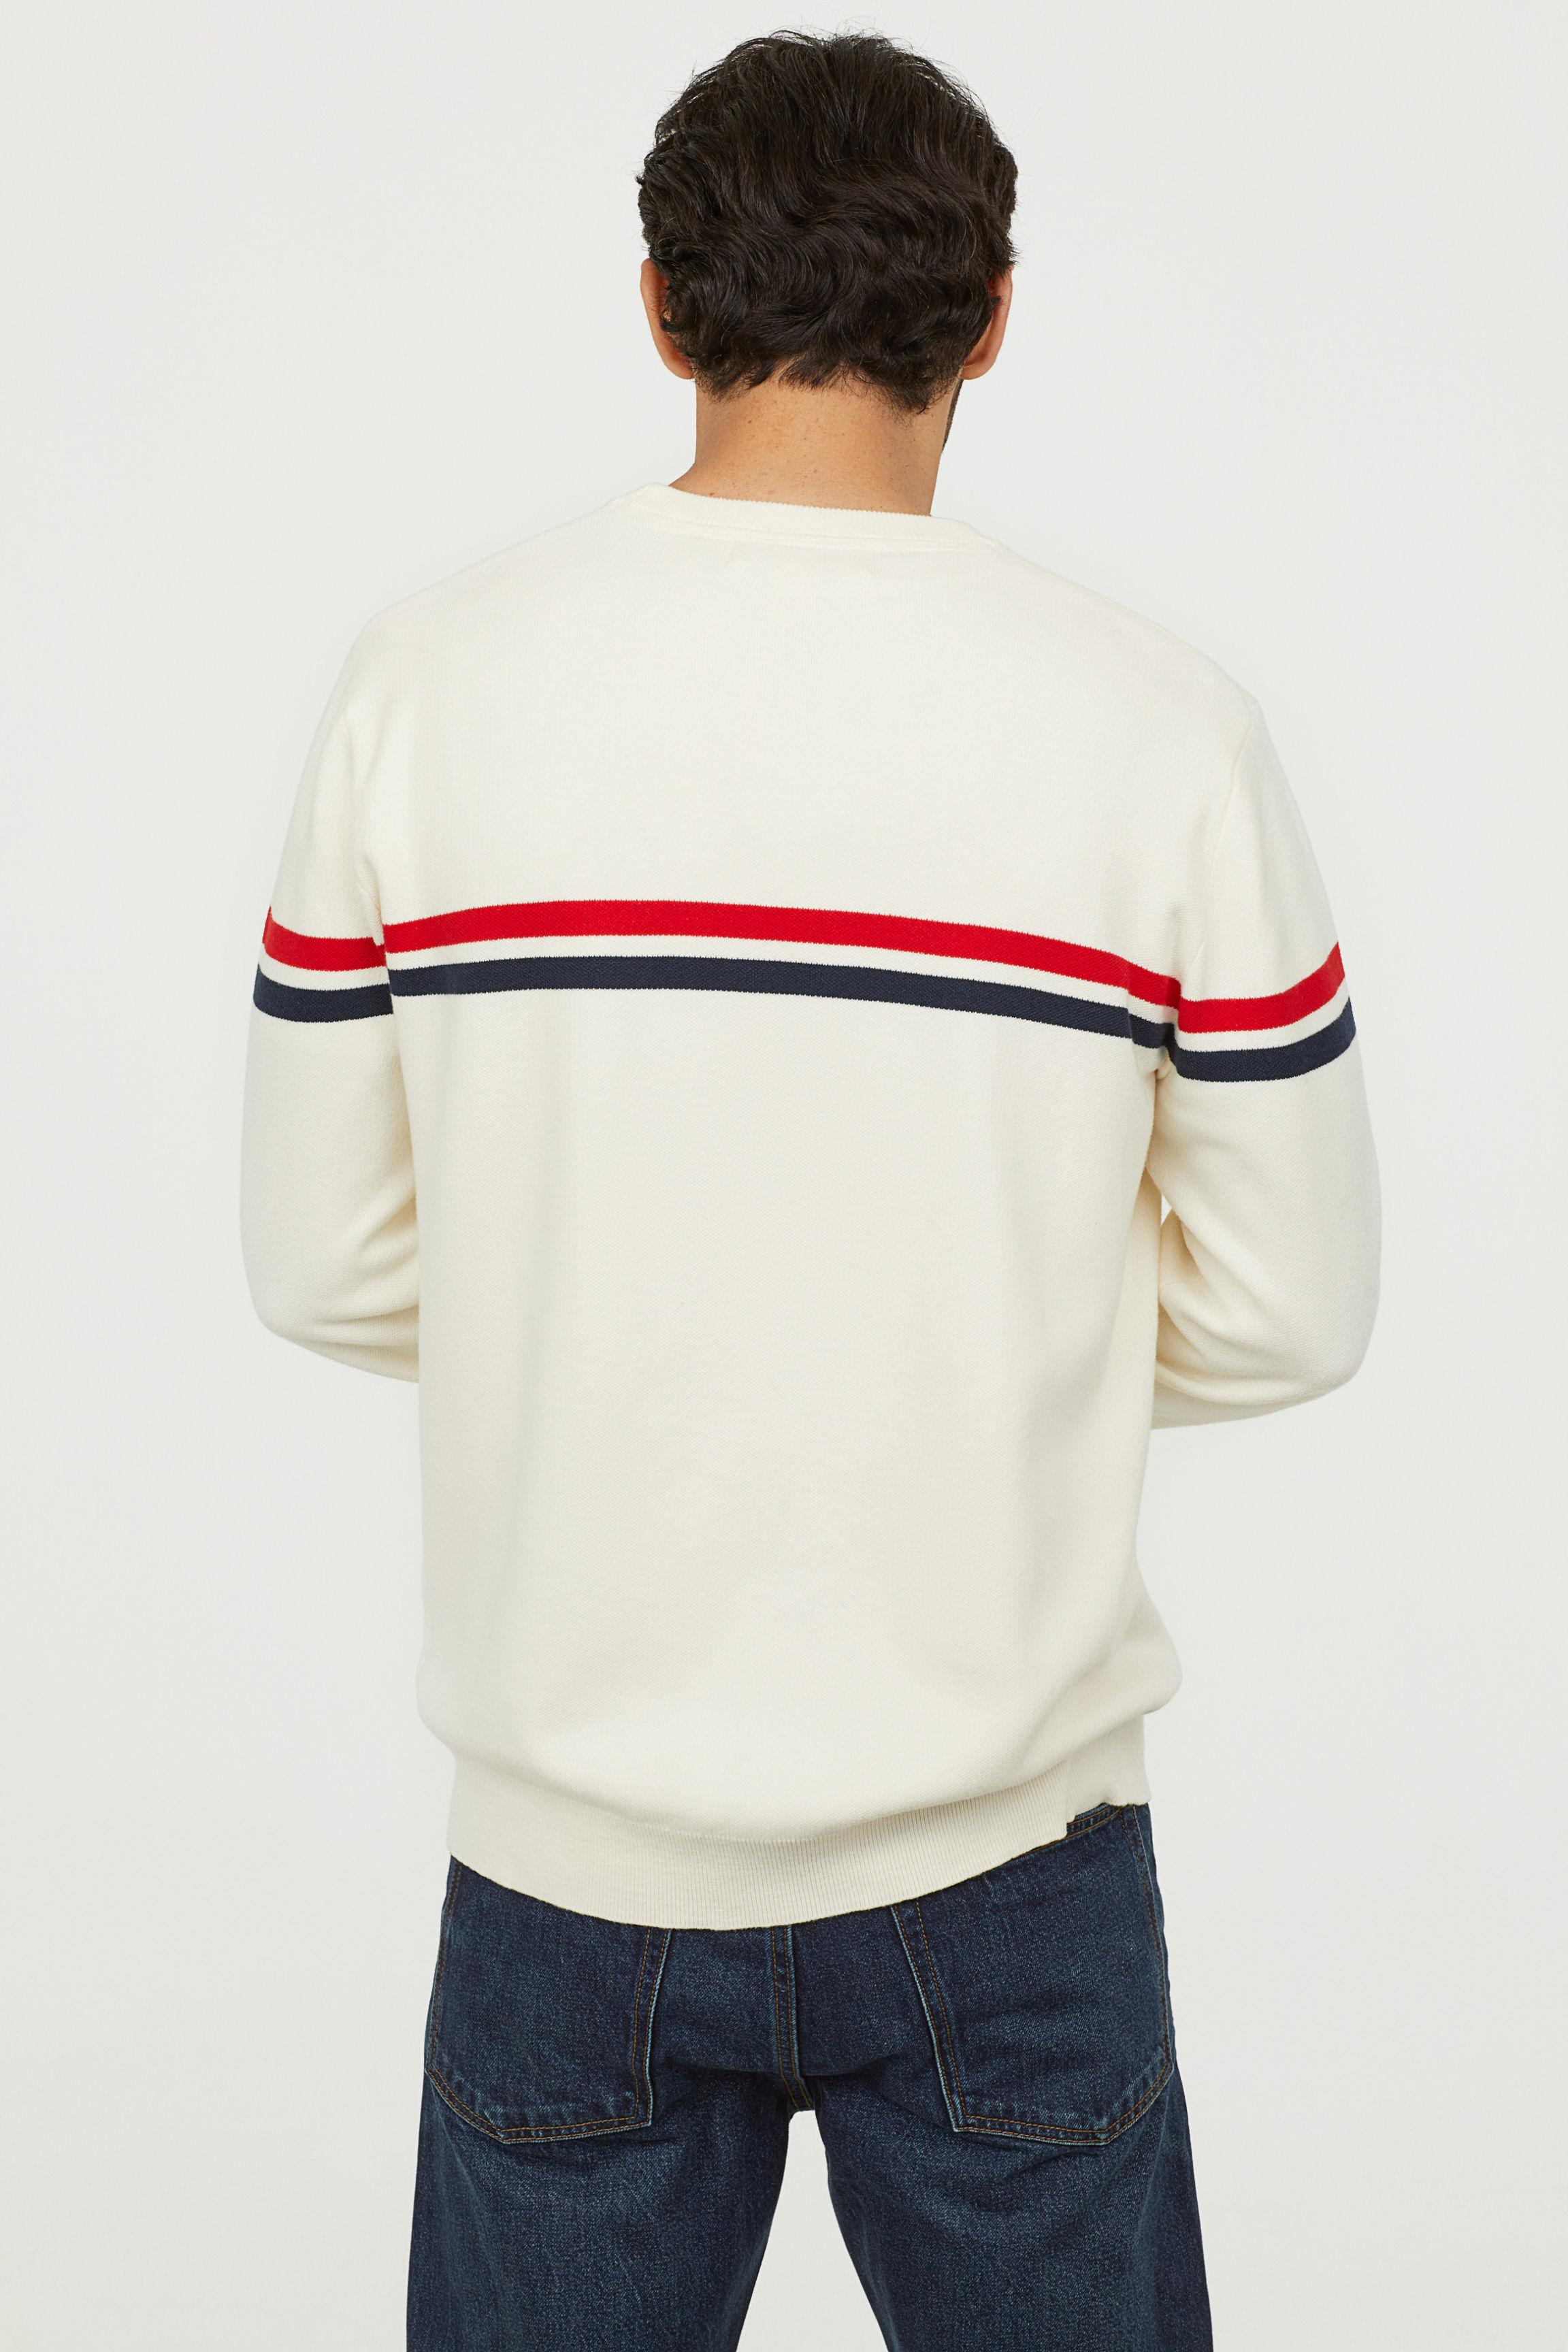 H&M Cotton Jacquard-knit Sweater in Natural White (White) for Men